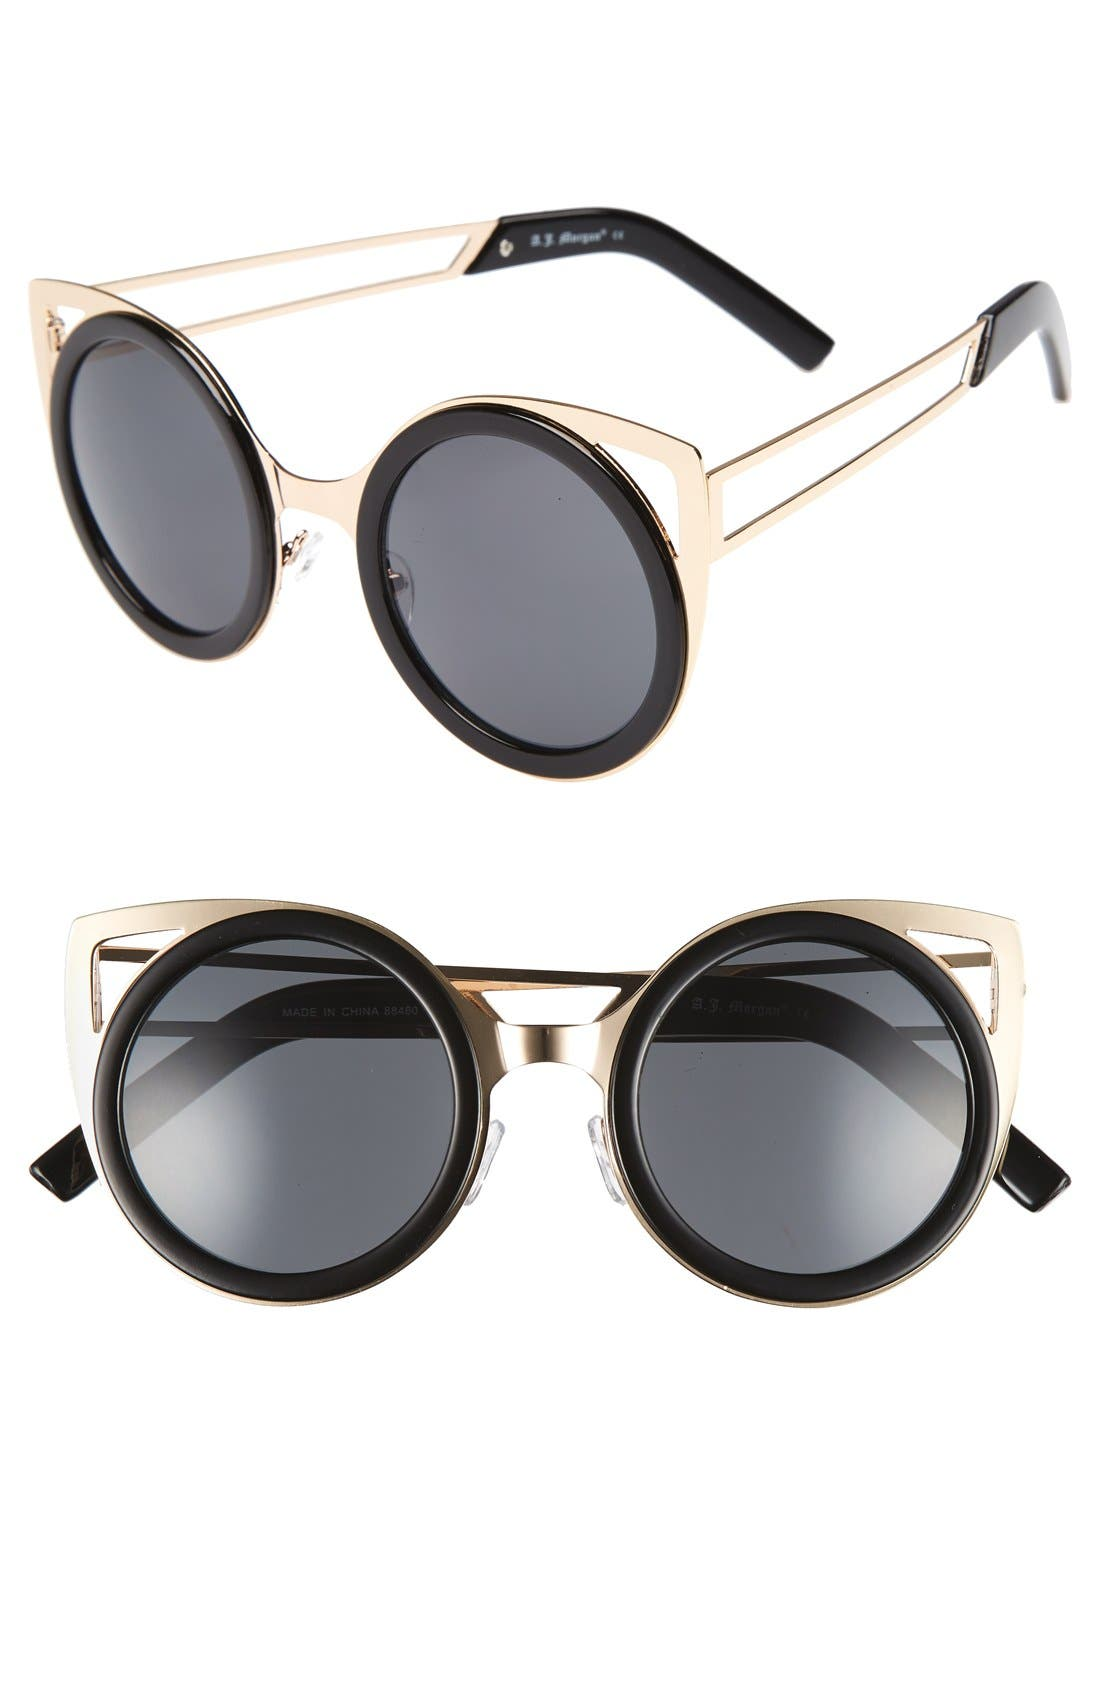 Main Image - A.J. Morgan 'Cheshire' 50mm Round Sunglasses